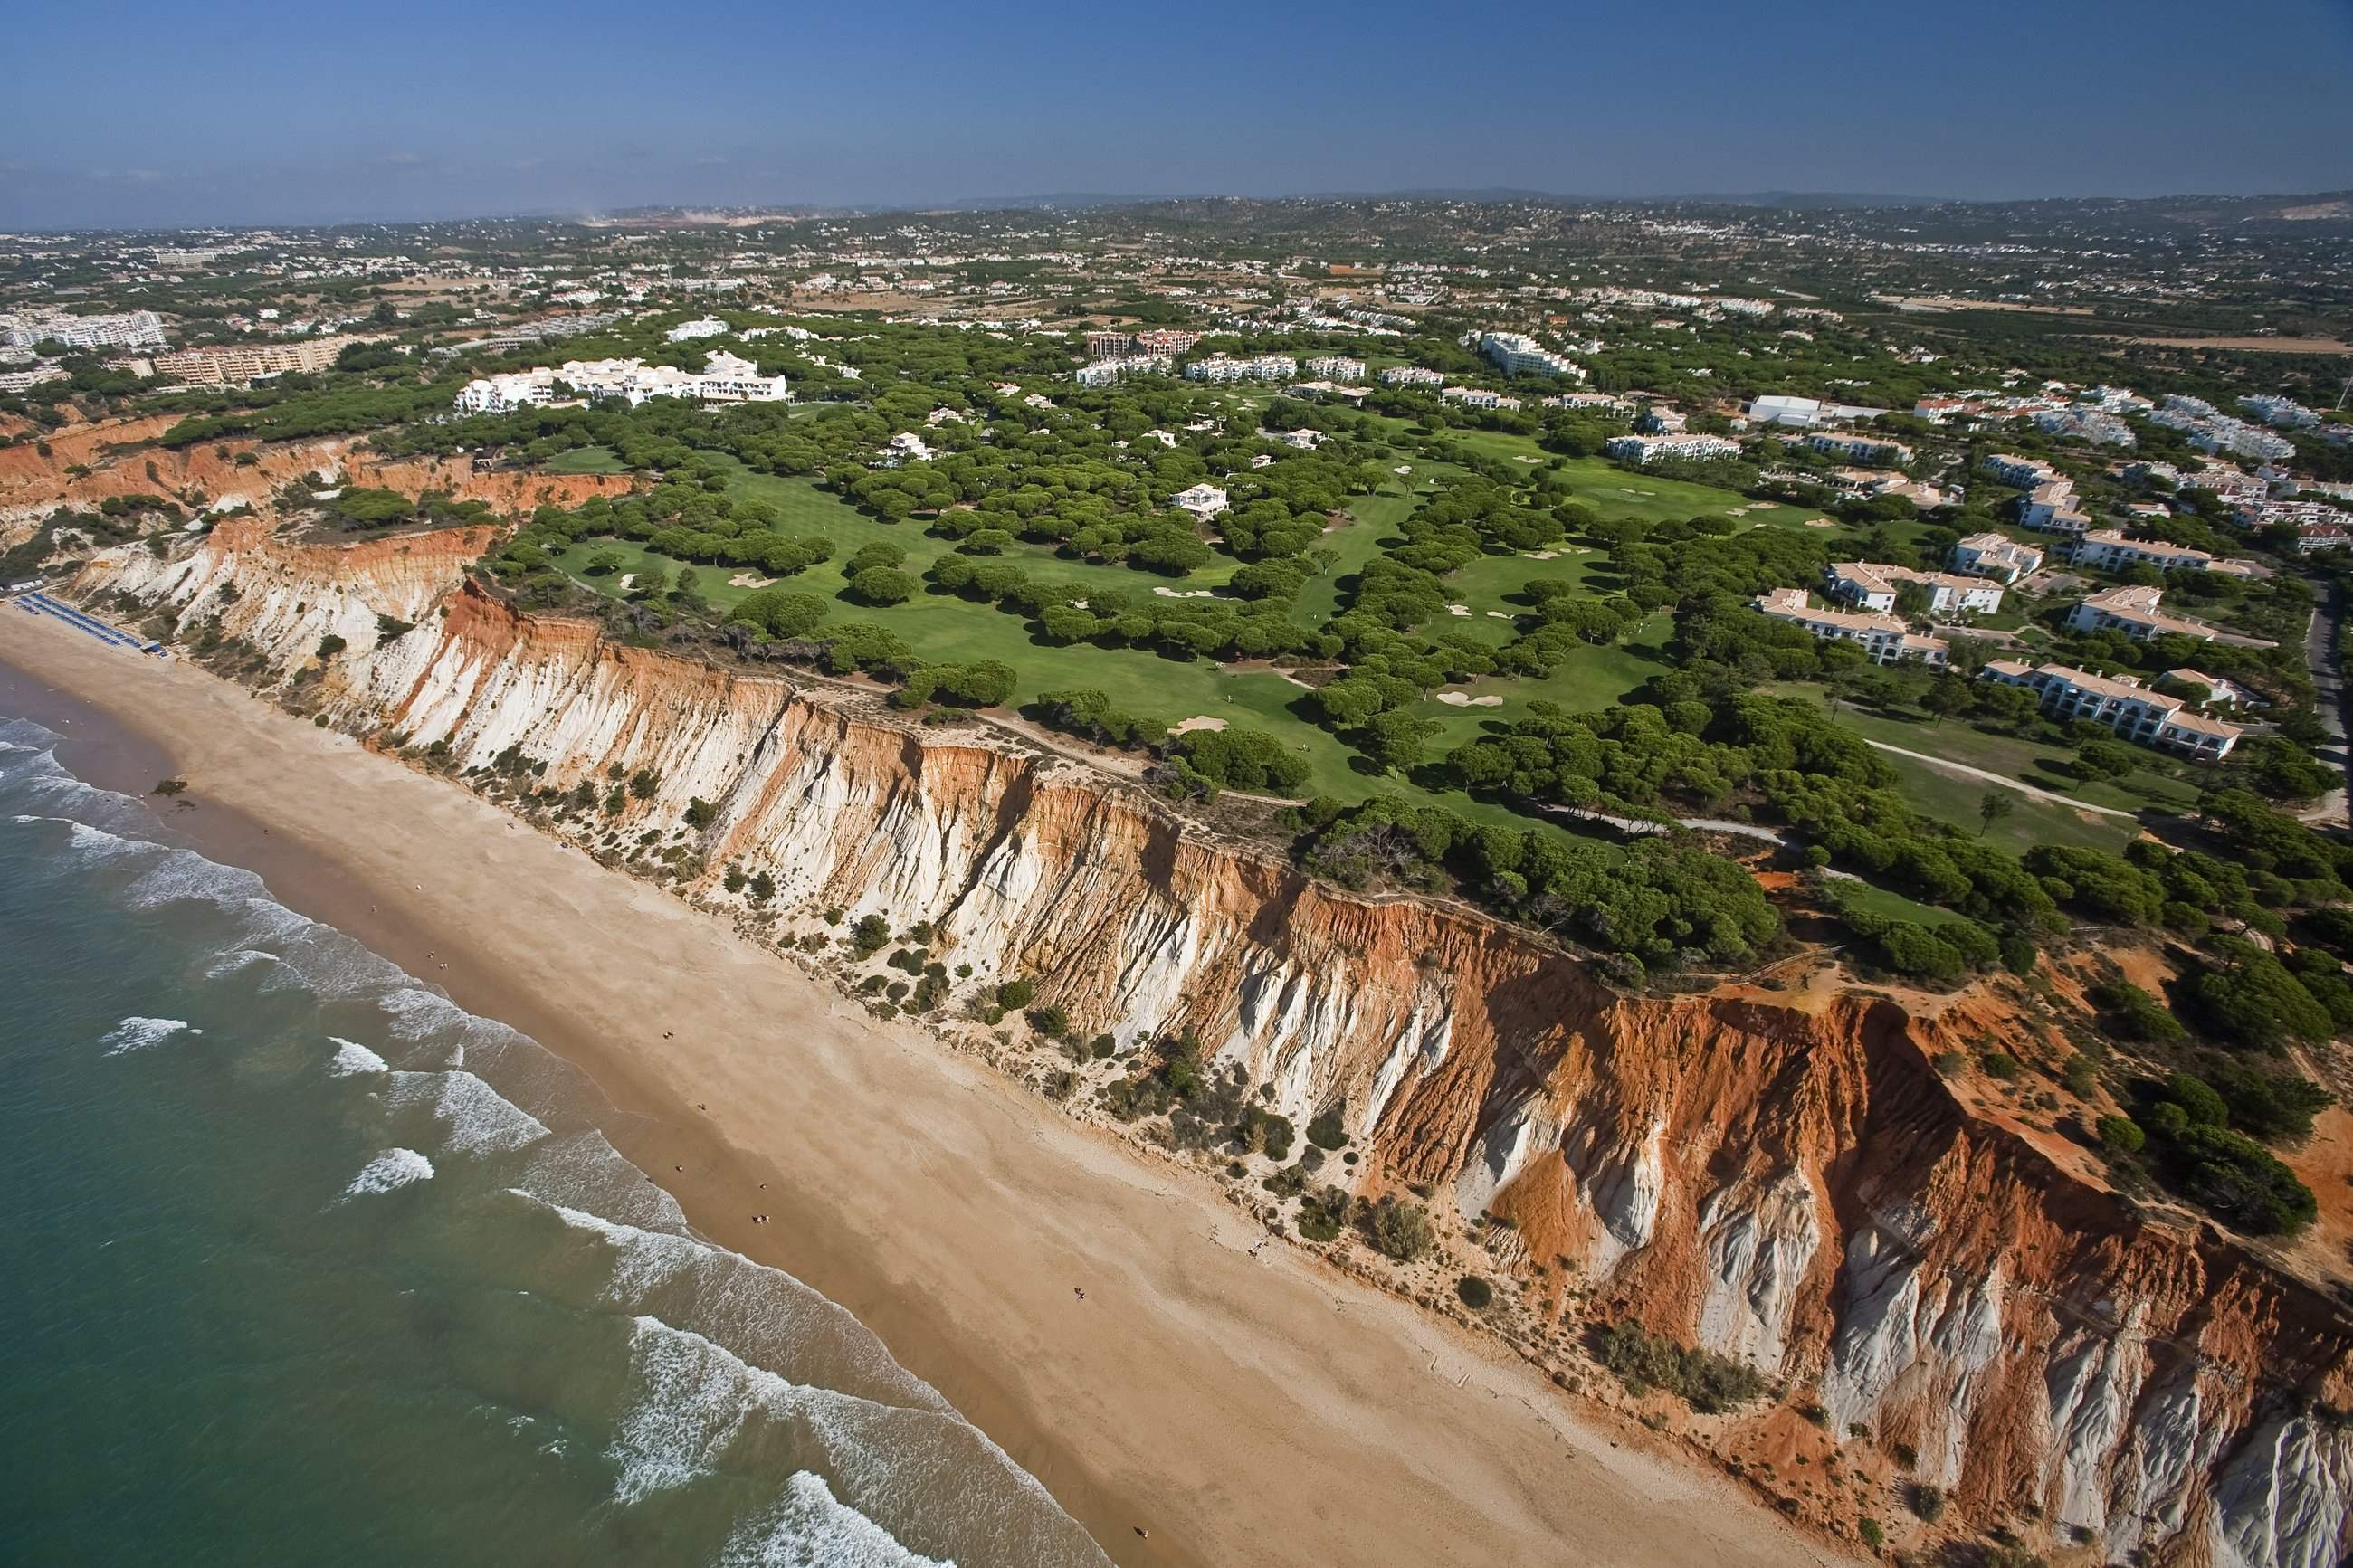 Pine Cliffs Terraces, 4 Bedroom, room only basis, 4 bedroom villa in Pine Cliffs Resort, Algarve Photo #19